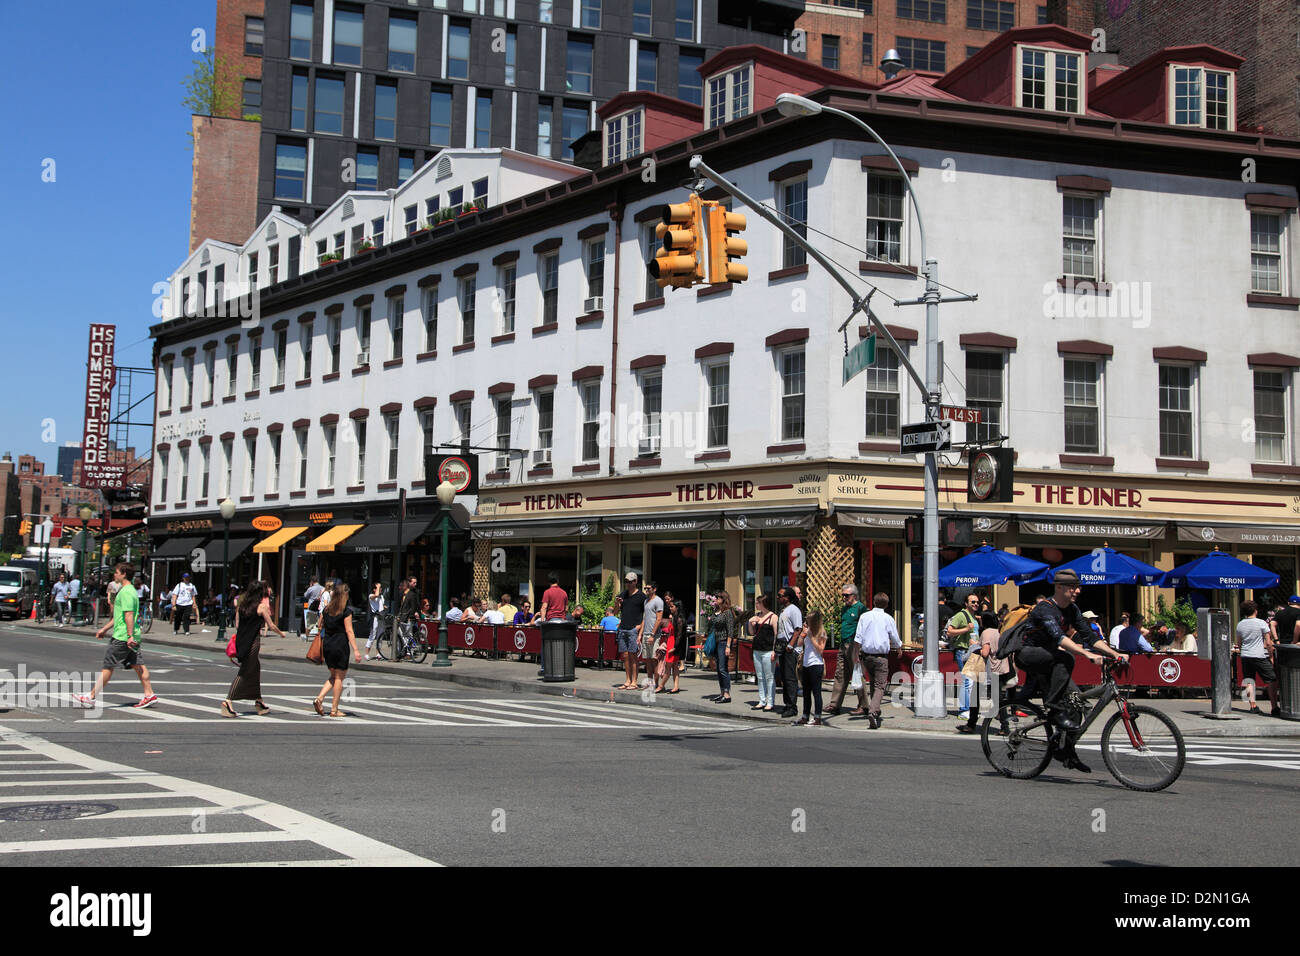 Meatpacking District, downtown Szeneviertel, Manhattan, New York City, Vereinigte Staaten von Amerika, Nordamerika Stockfoto